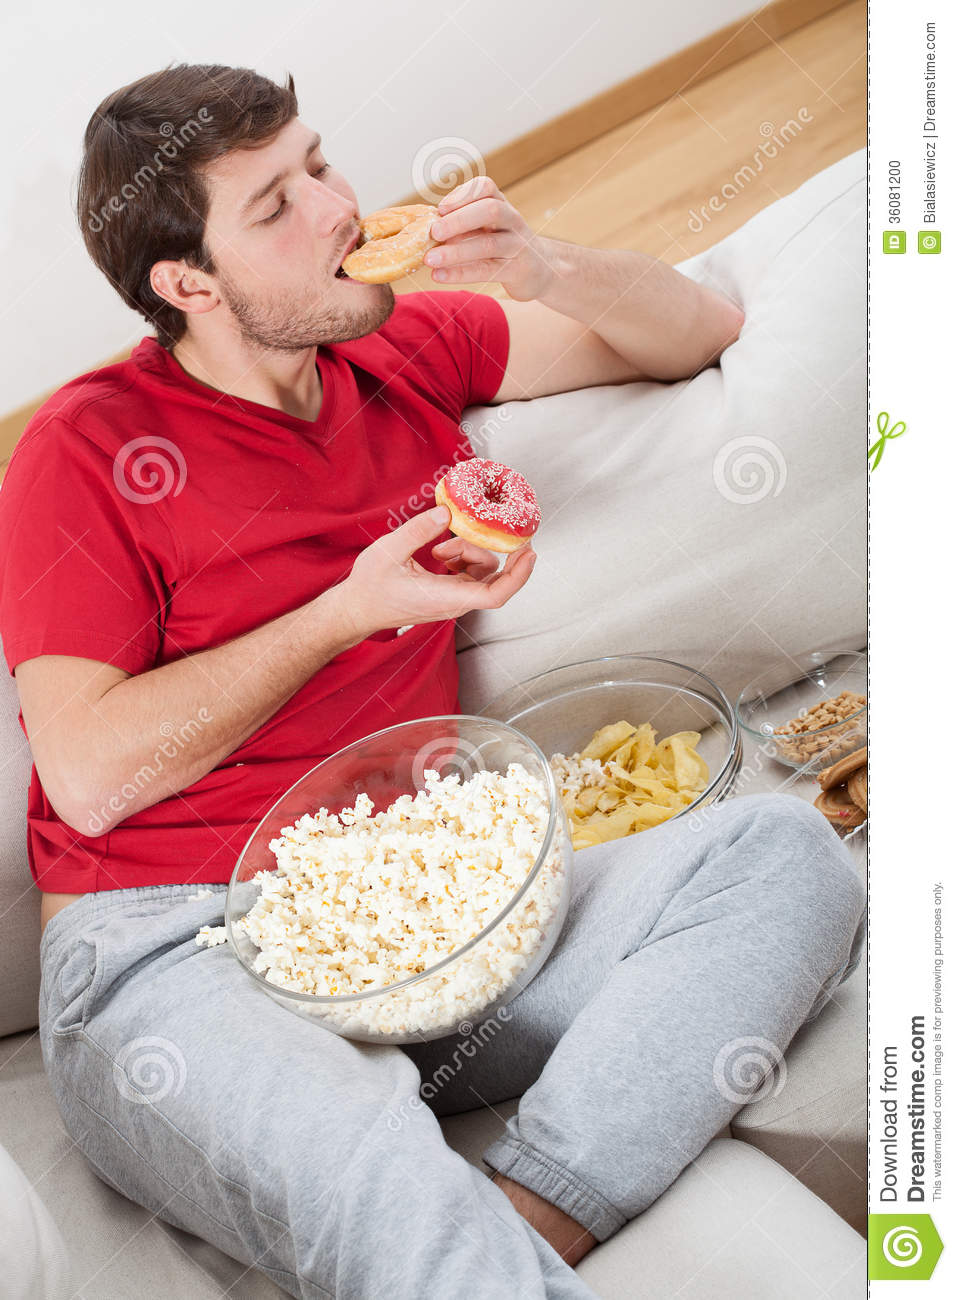 Lazy Guy On A Couch With Food Stock Photo - Image: 36081200